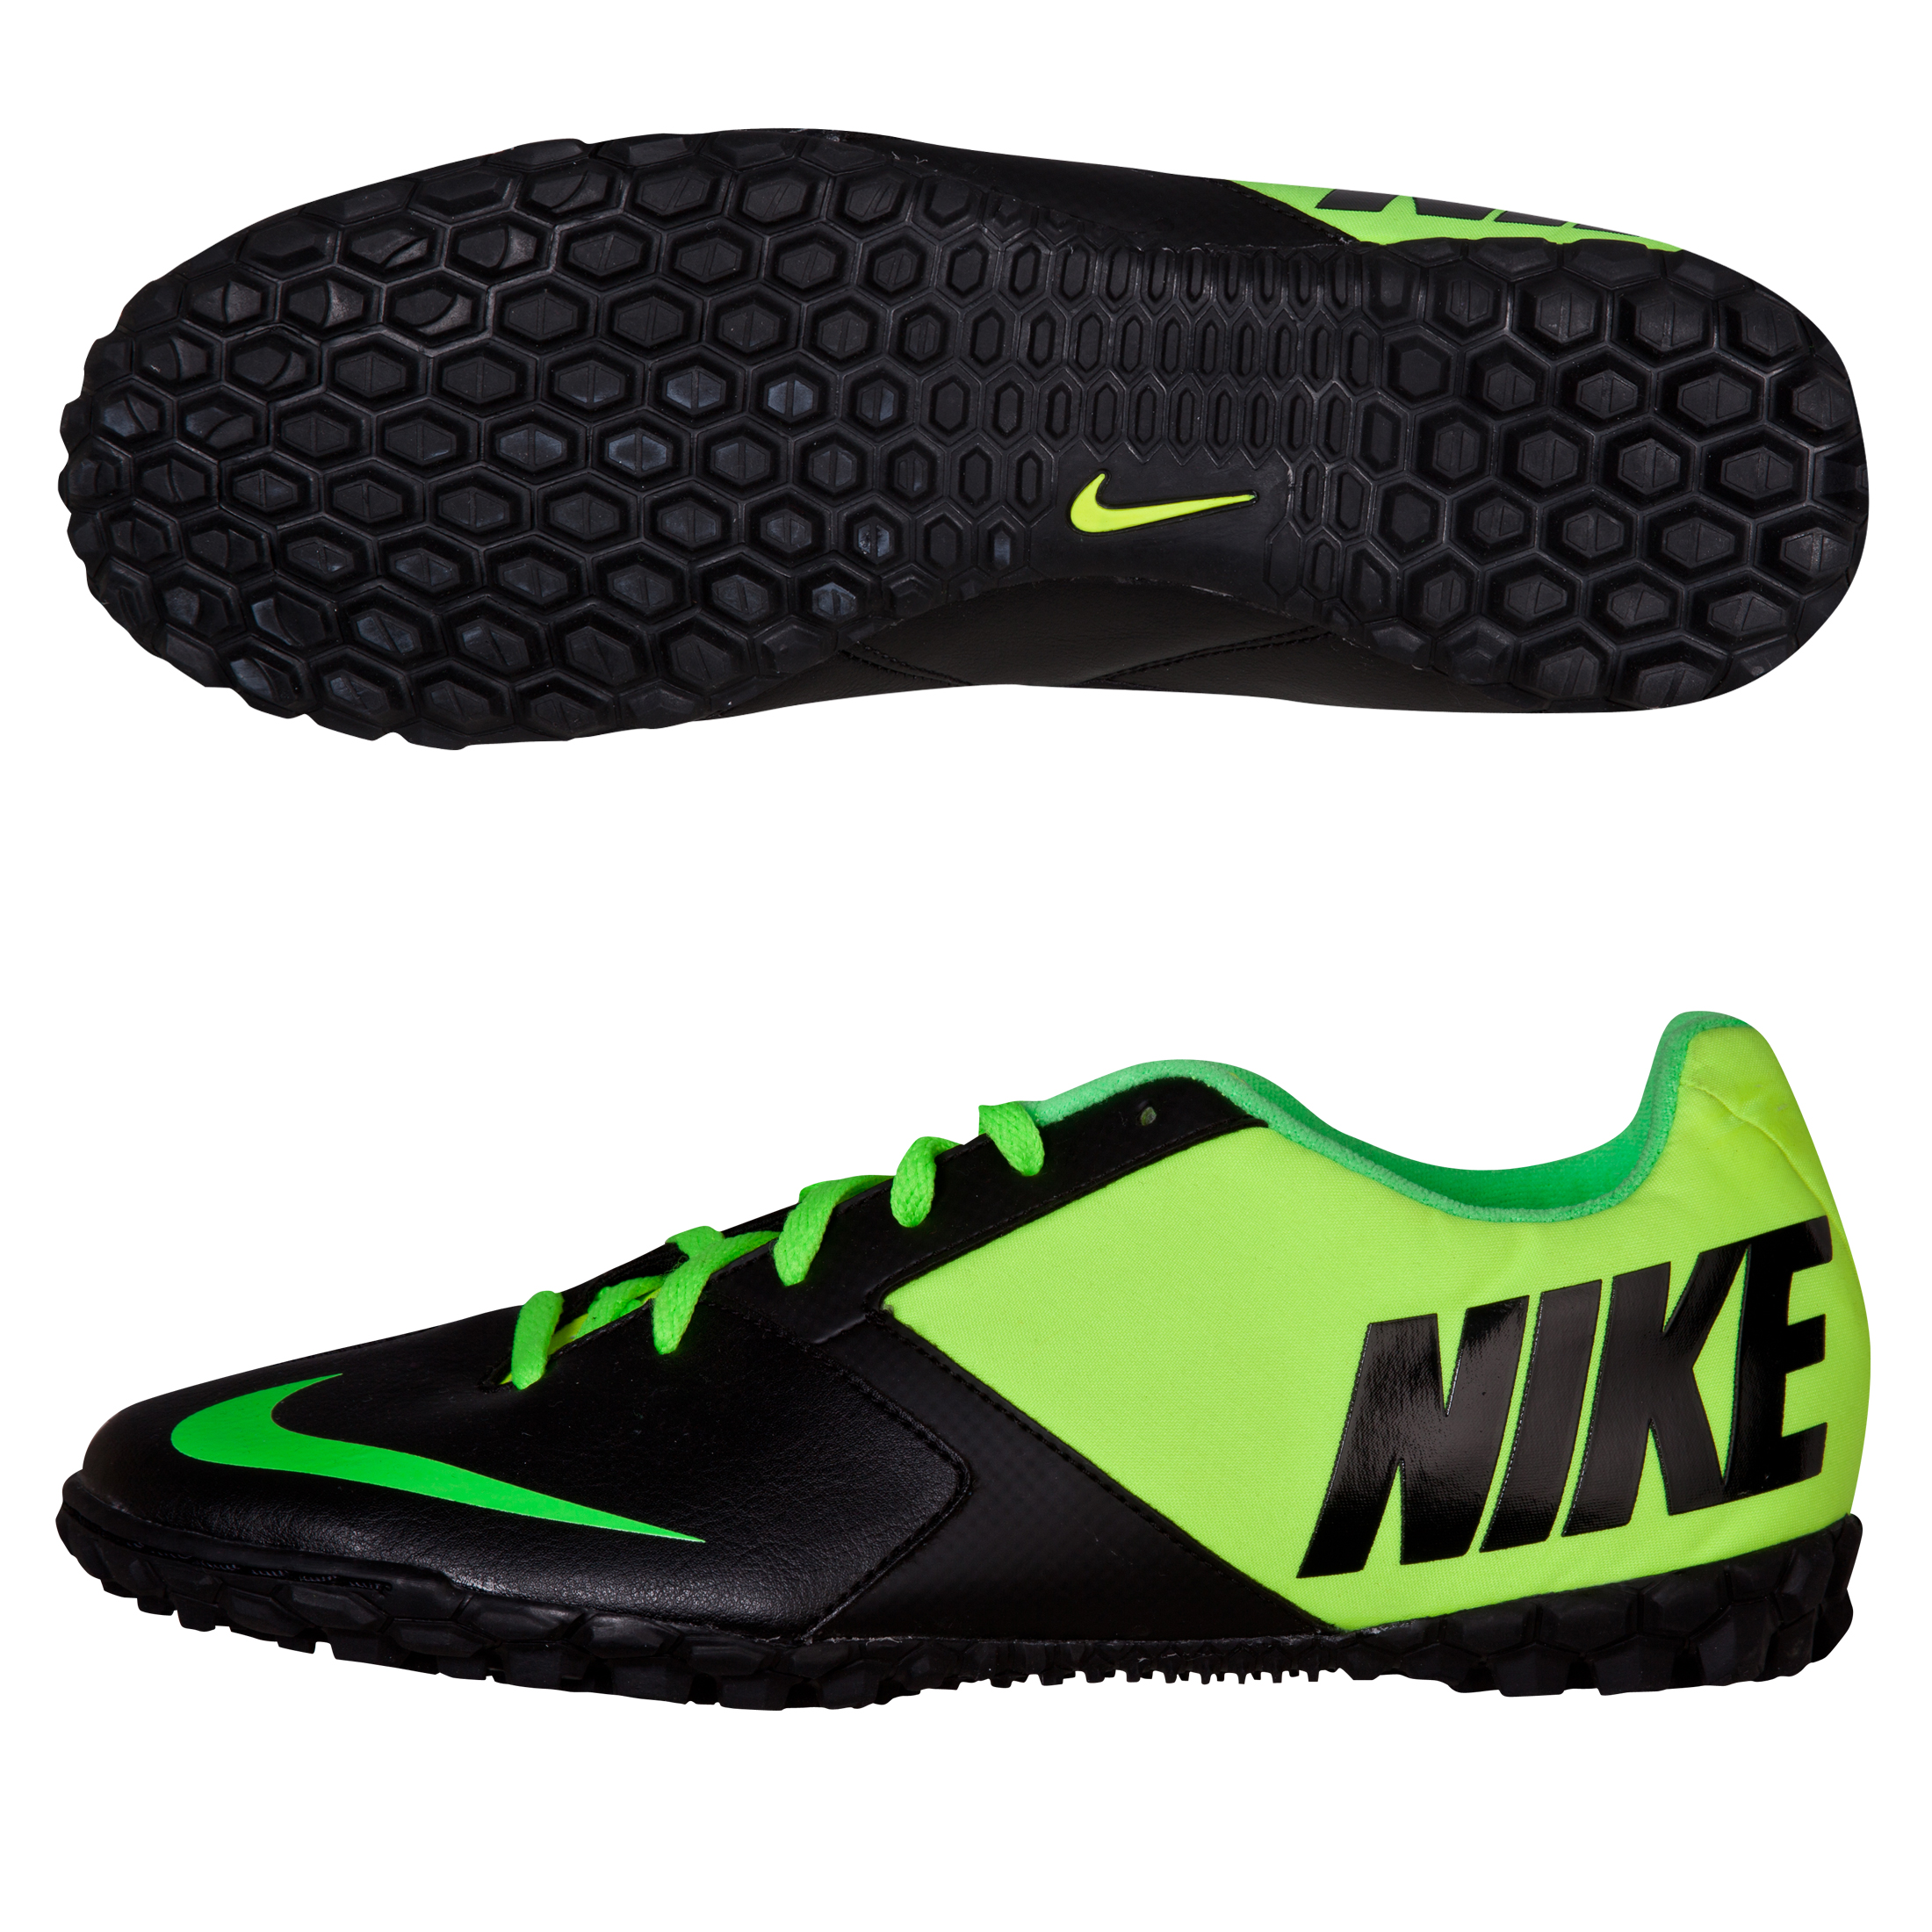 Nike Bomba II Trainers - Black/Electric Green/Volt Black